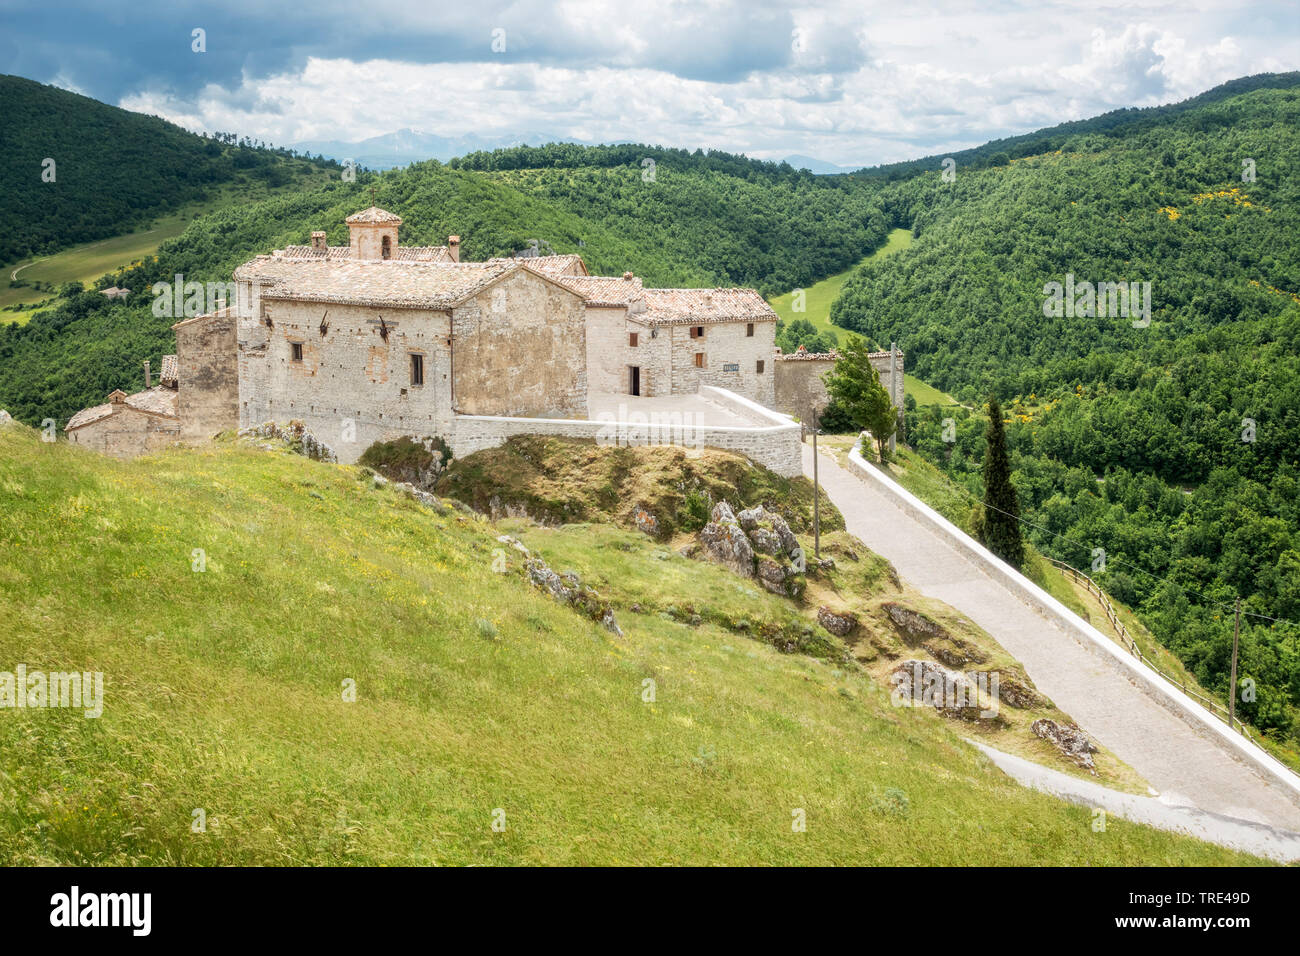 Looking over the historic mountain town of Elcito in the marche region of Italy, Italy, Marche Stock Photo